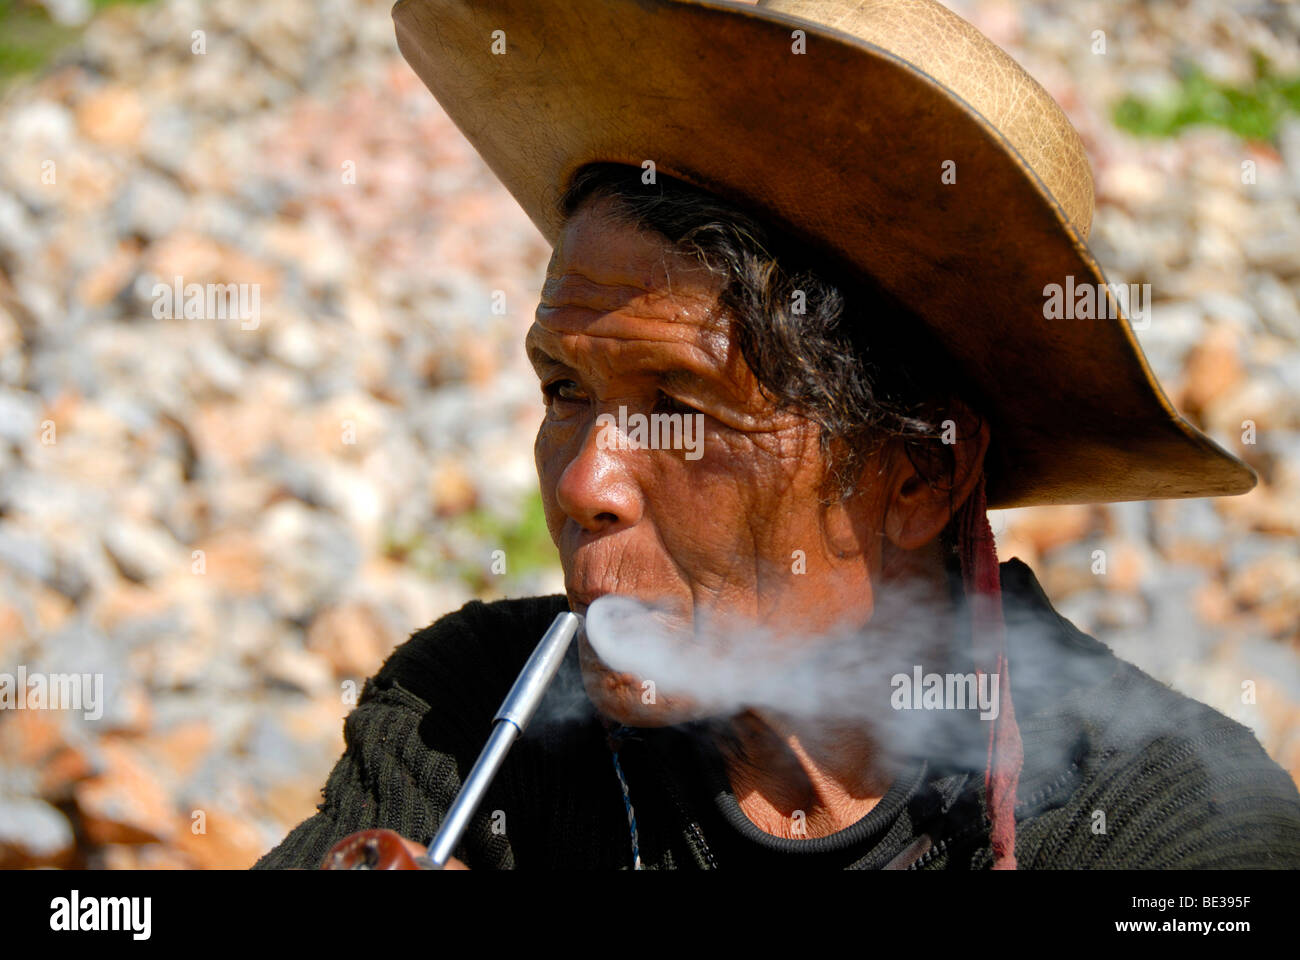 Portrait, ethnology, man of the Mosu ethnicity with hat, smoking a pipe, Yongning, Lugu Hu Lake area, Yunnan Province, - Stock Image